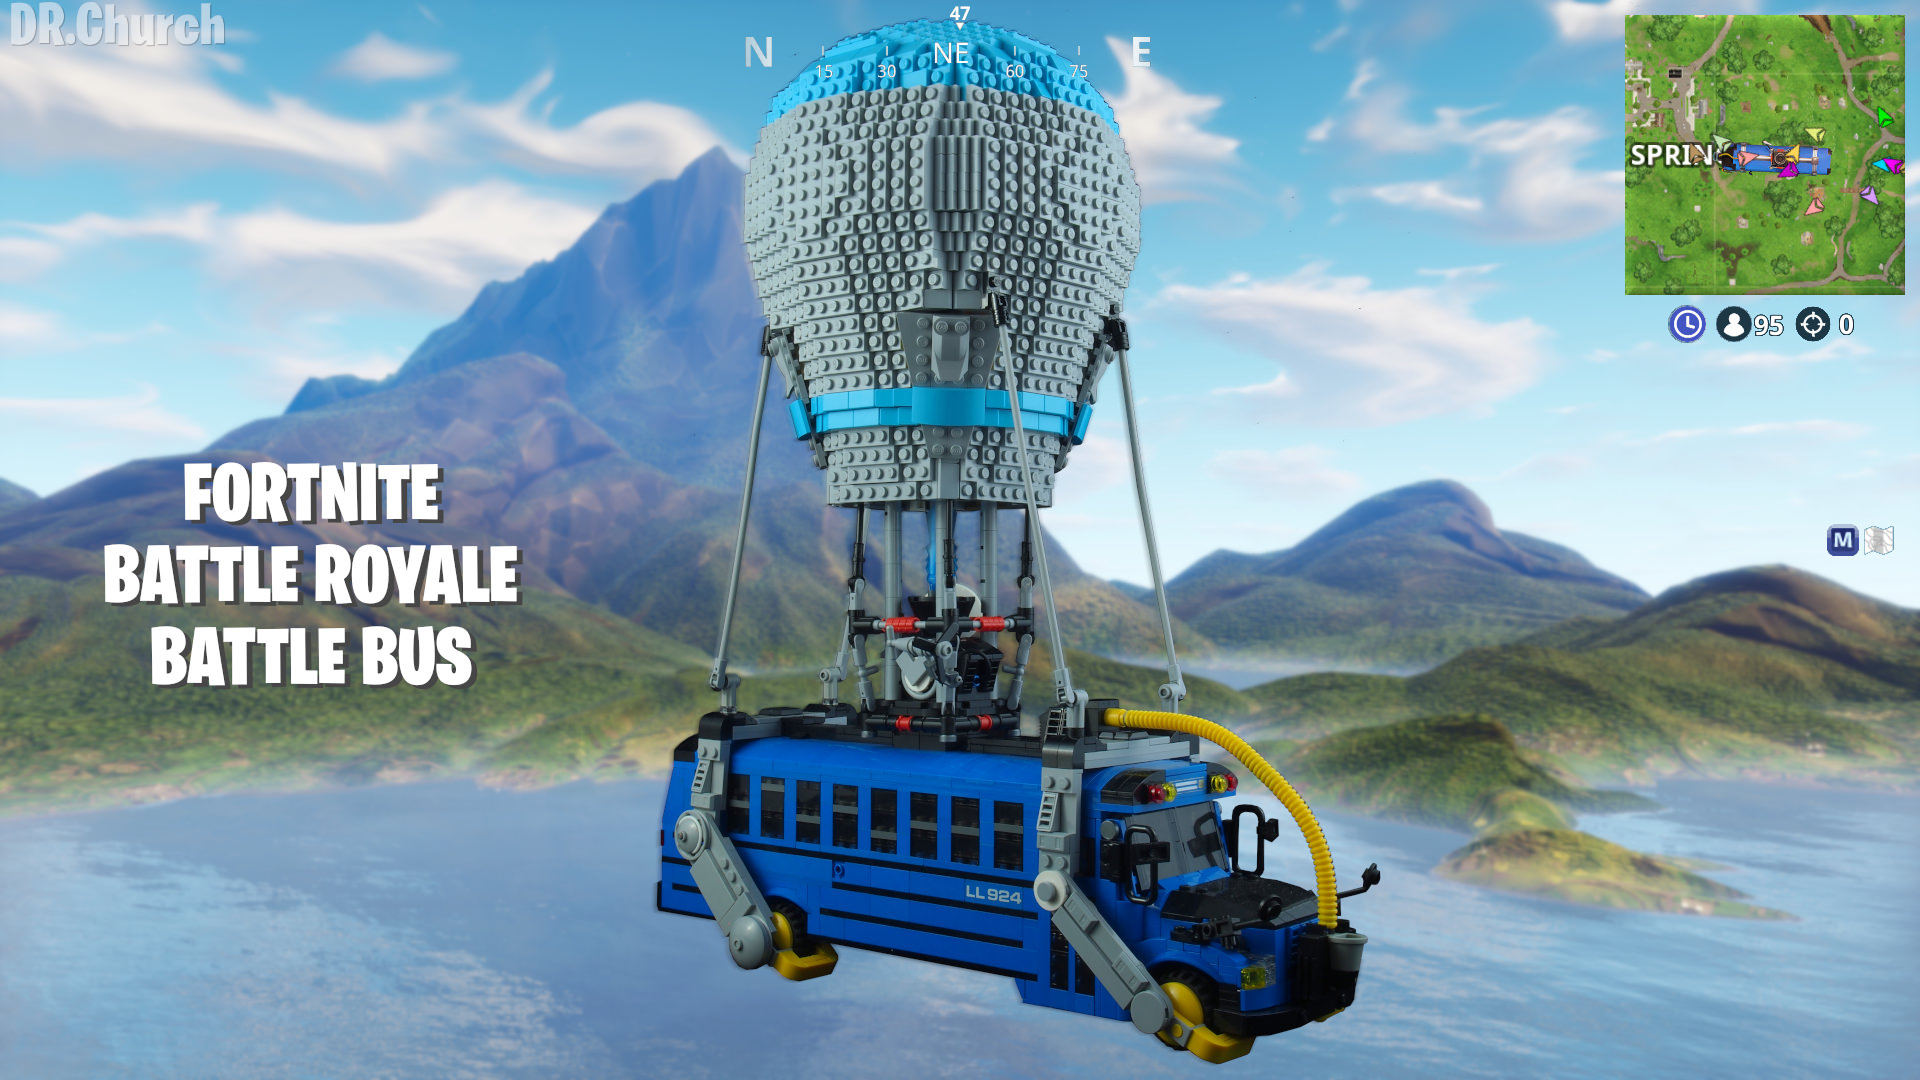 I made the Battle Bus from Fortnite Battle Royale out LEGO 1920x1080